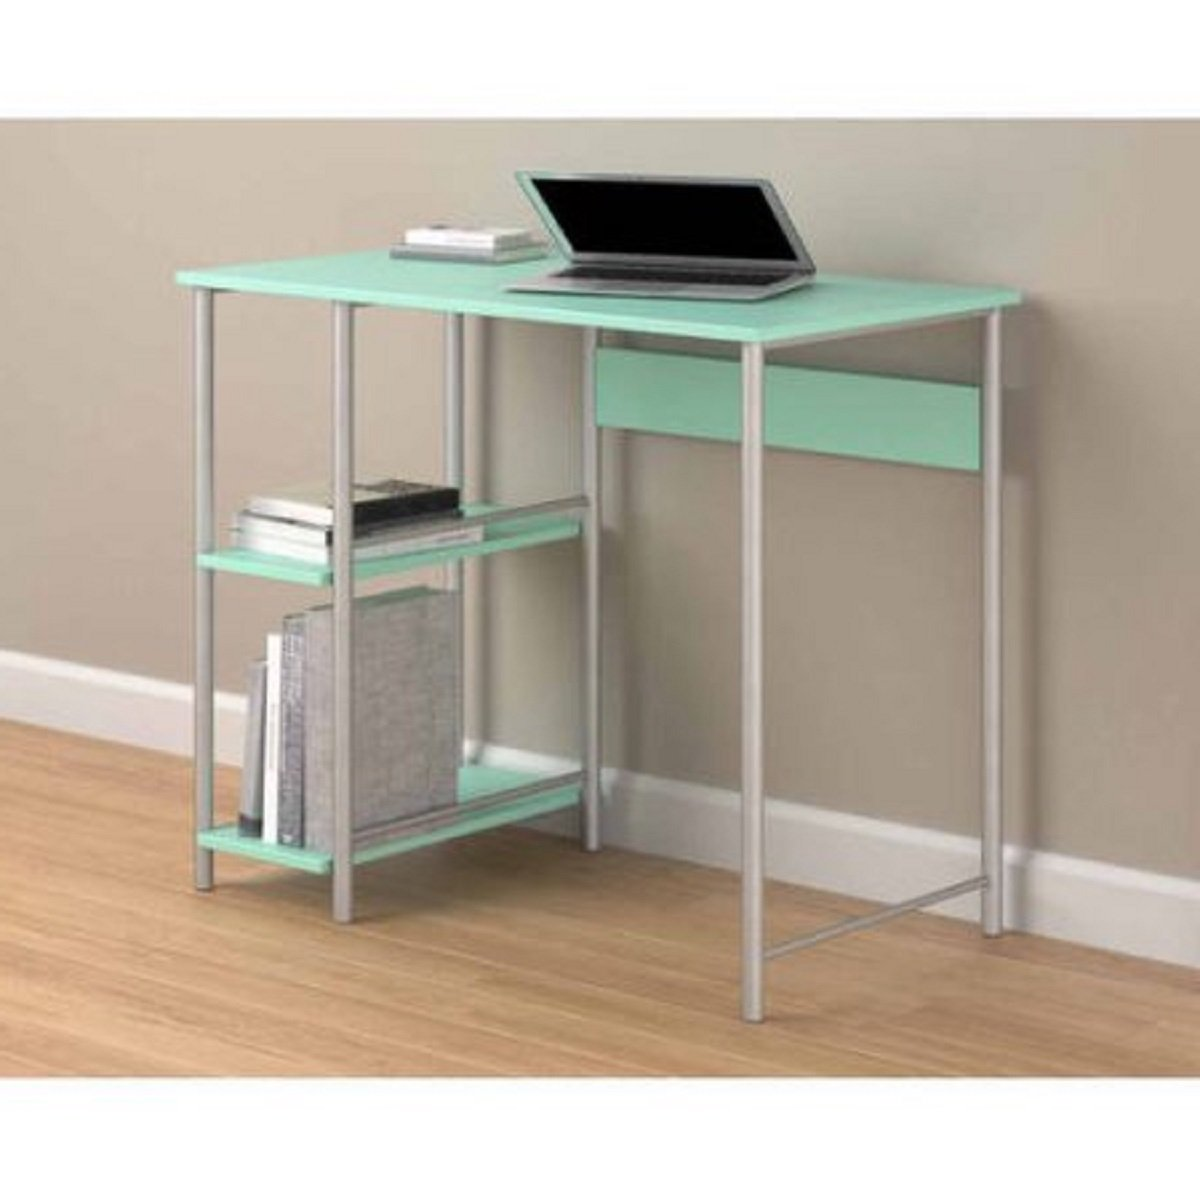 Spearmint Sturdy Metal Frame Laminated Particleboard And Metal Basic Student Desk, Dimensions 36Wx20Dx30H by Mainstay